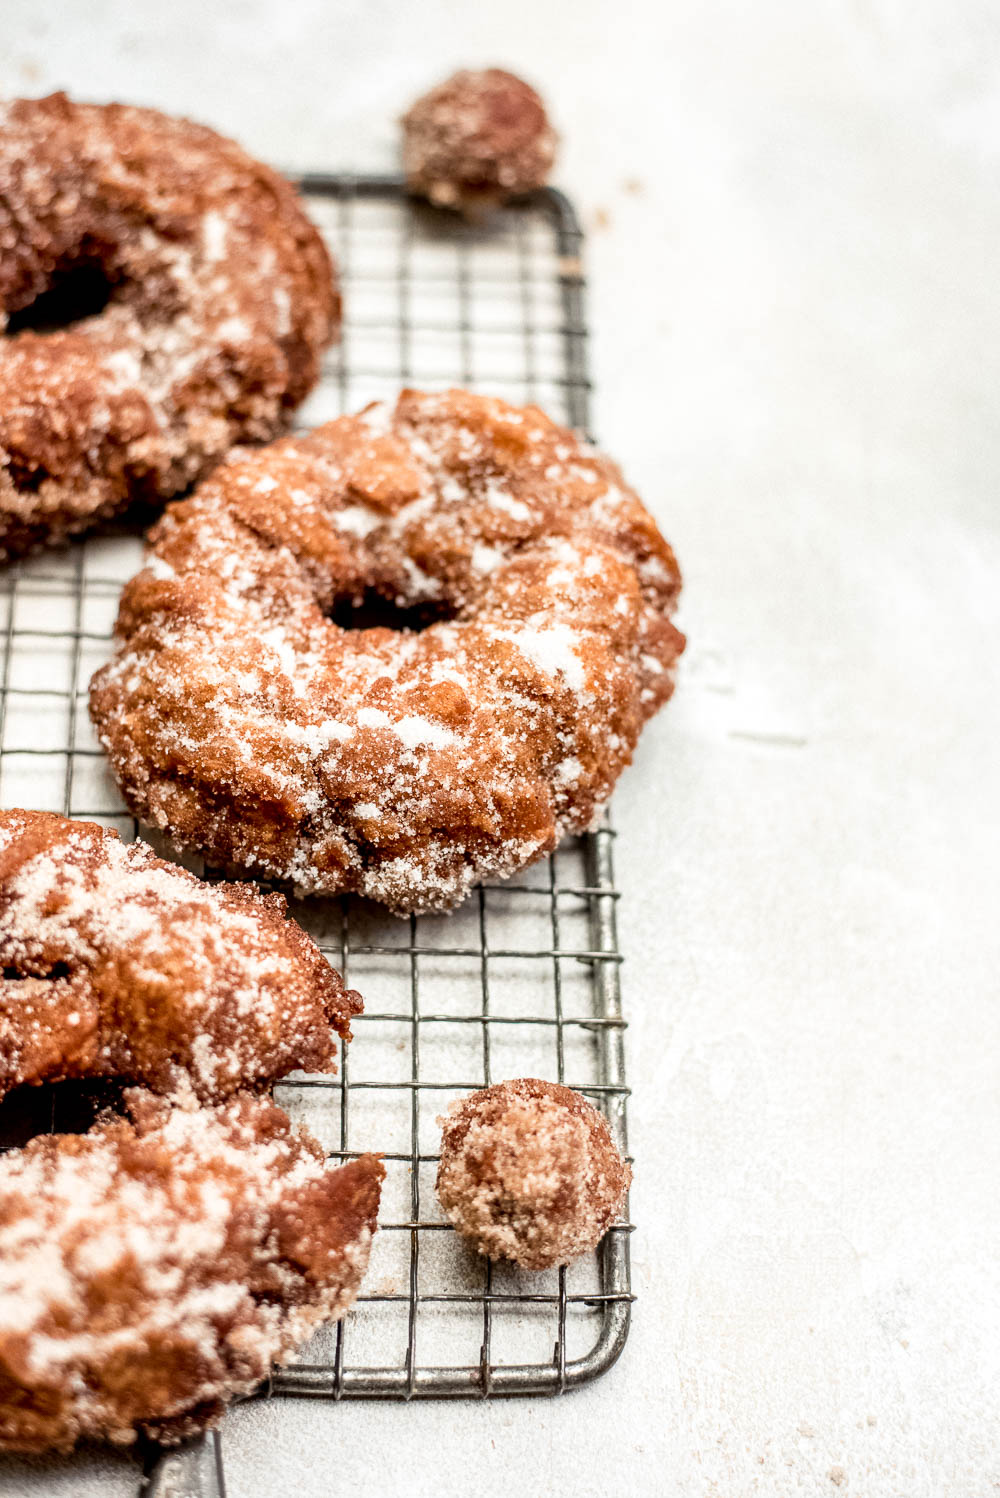 apple cider donuts close up on wire rack